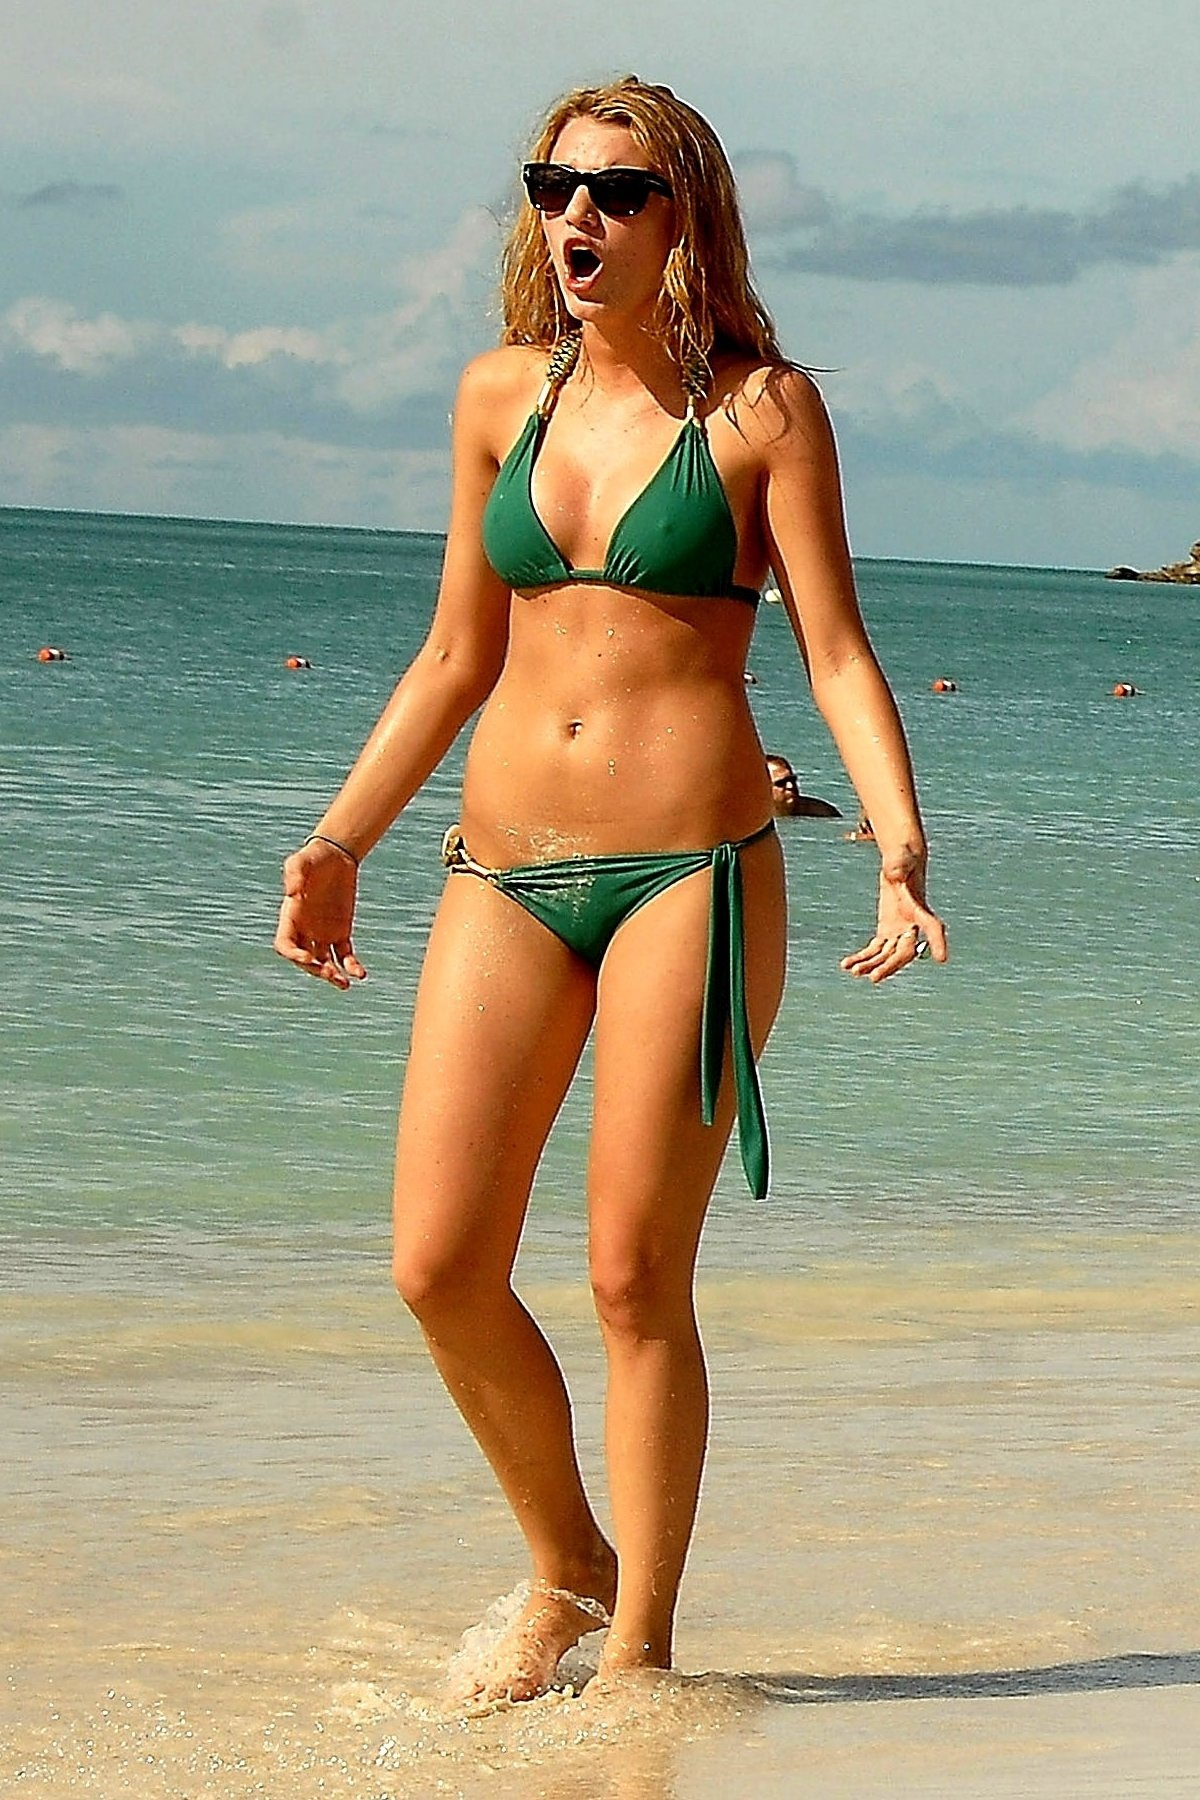 Blake Lively Bikini Pictures With Maria Menounos Copy Hot